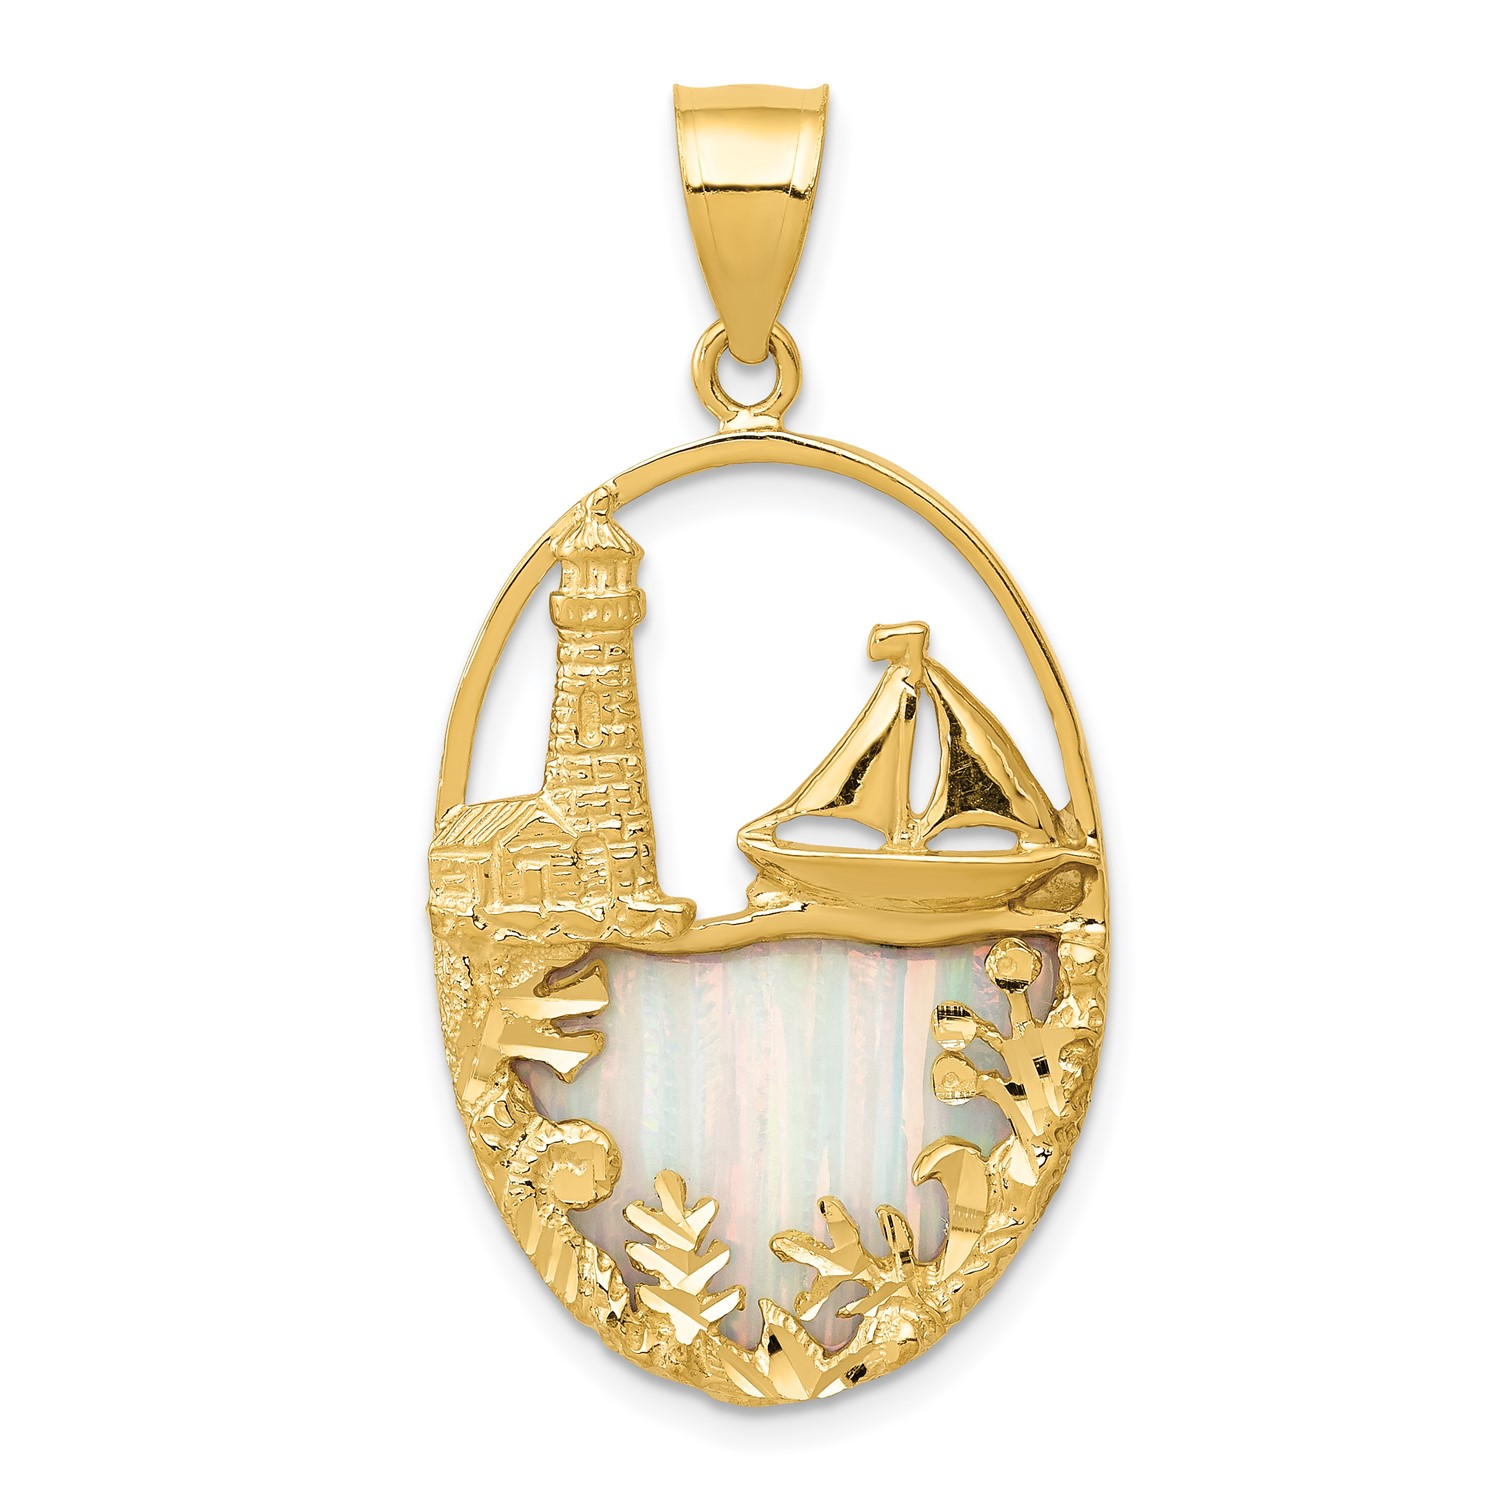 14k-Yellow-Gold-Imitation-Opal-Lighthouse-amp-Sailboat-Pendant-1-4INx0-7IN